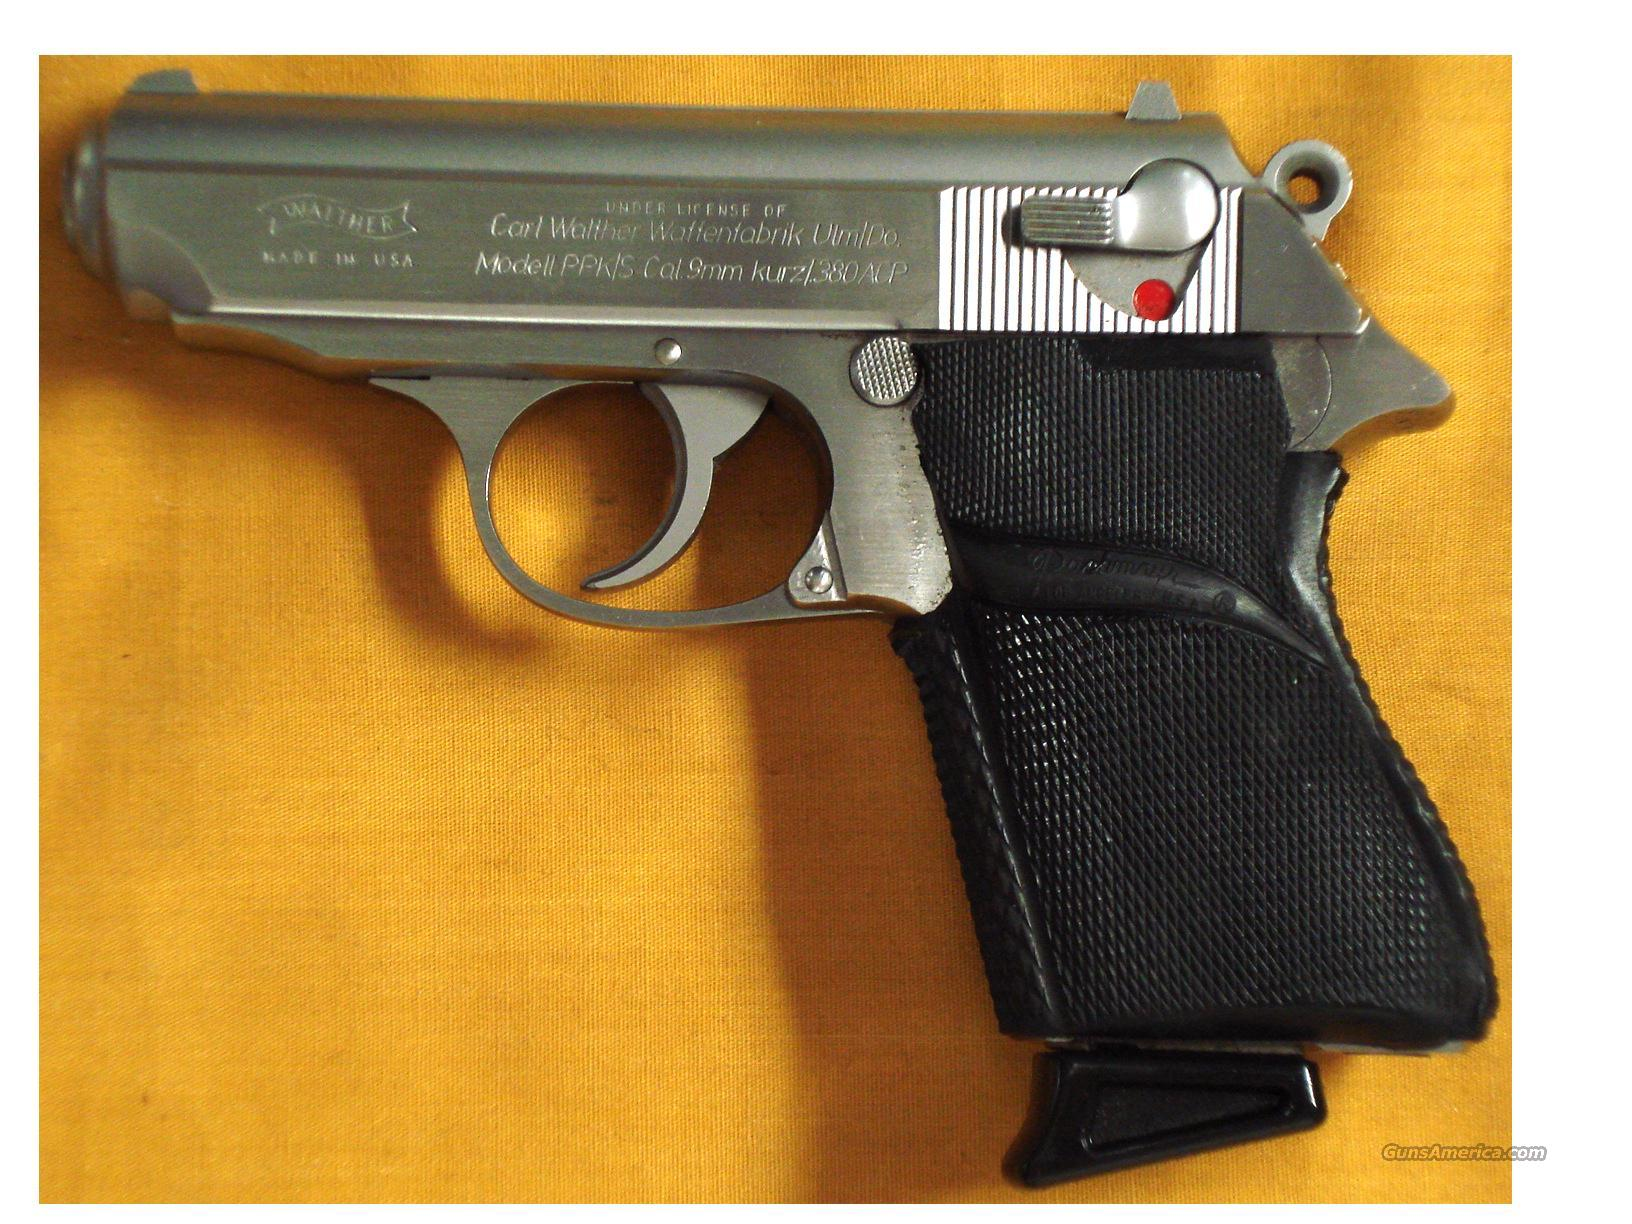 "WALTHER PPKS 380 3 1/4"" BARREL  Guns > Pistols > Walther Pistols > Post WWII > PPK Series"